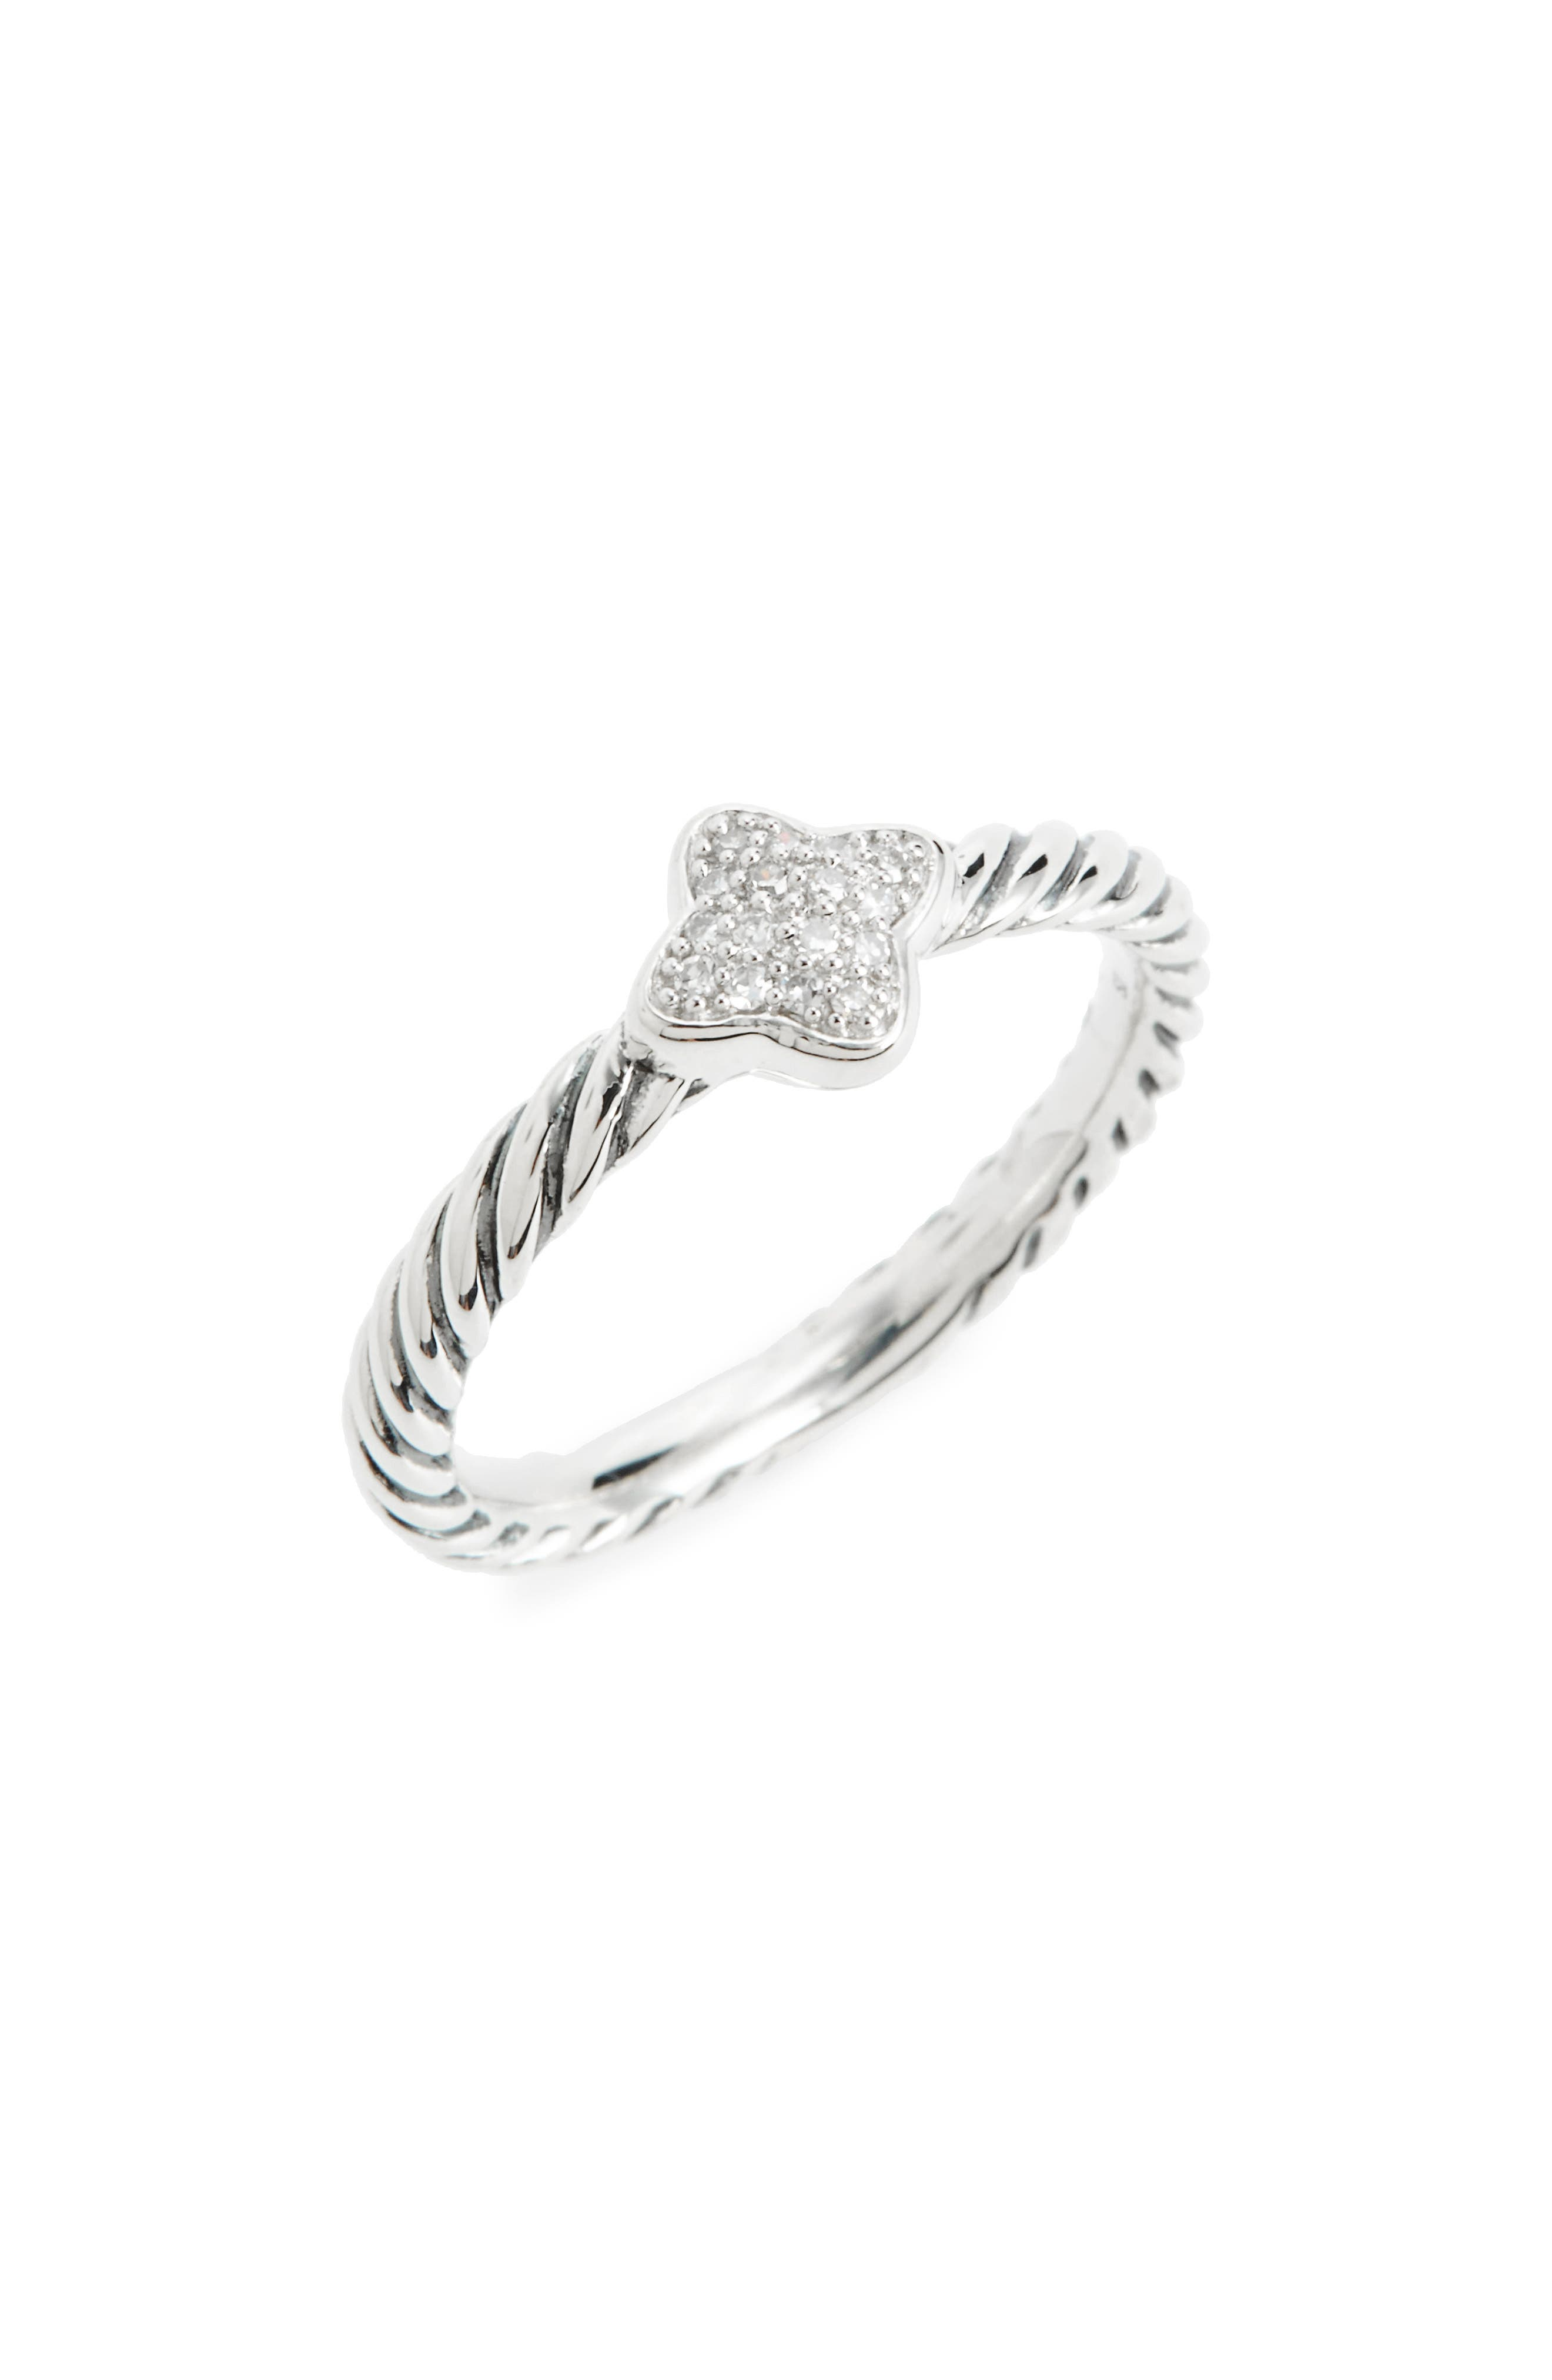 Main Image - David Yurman Quatrefoil Ring with Diamonds